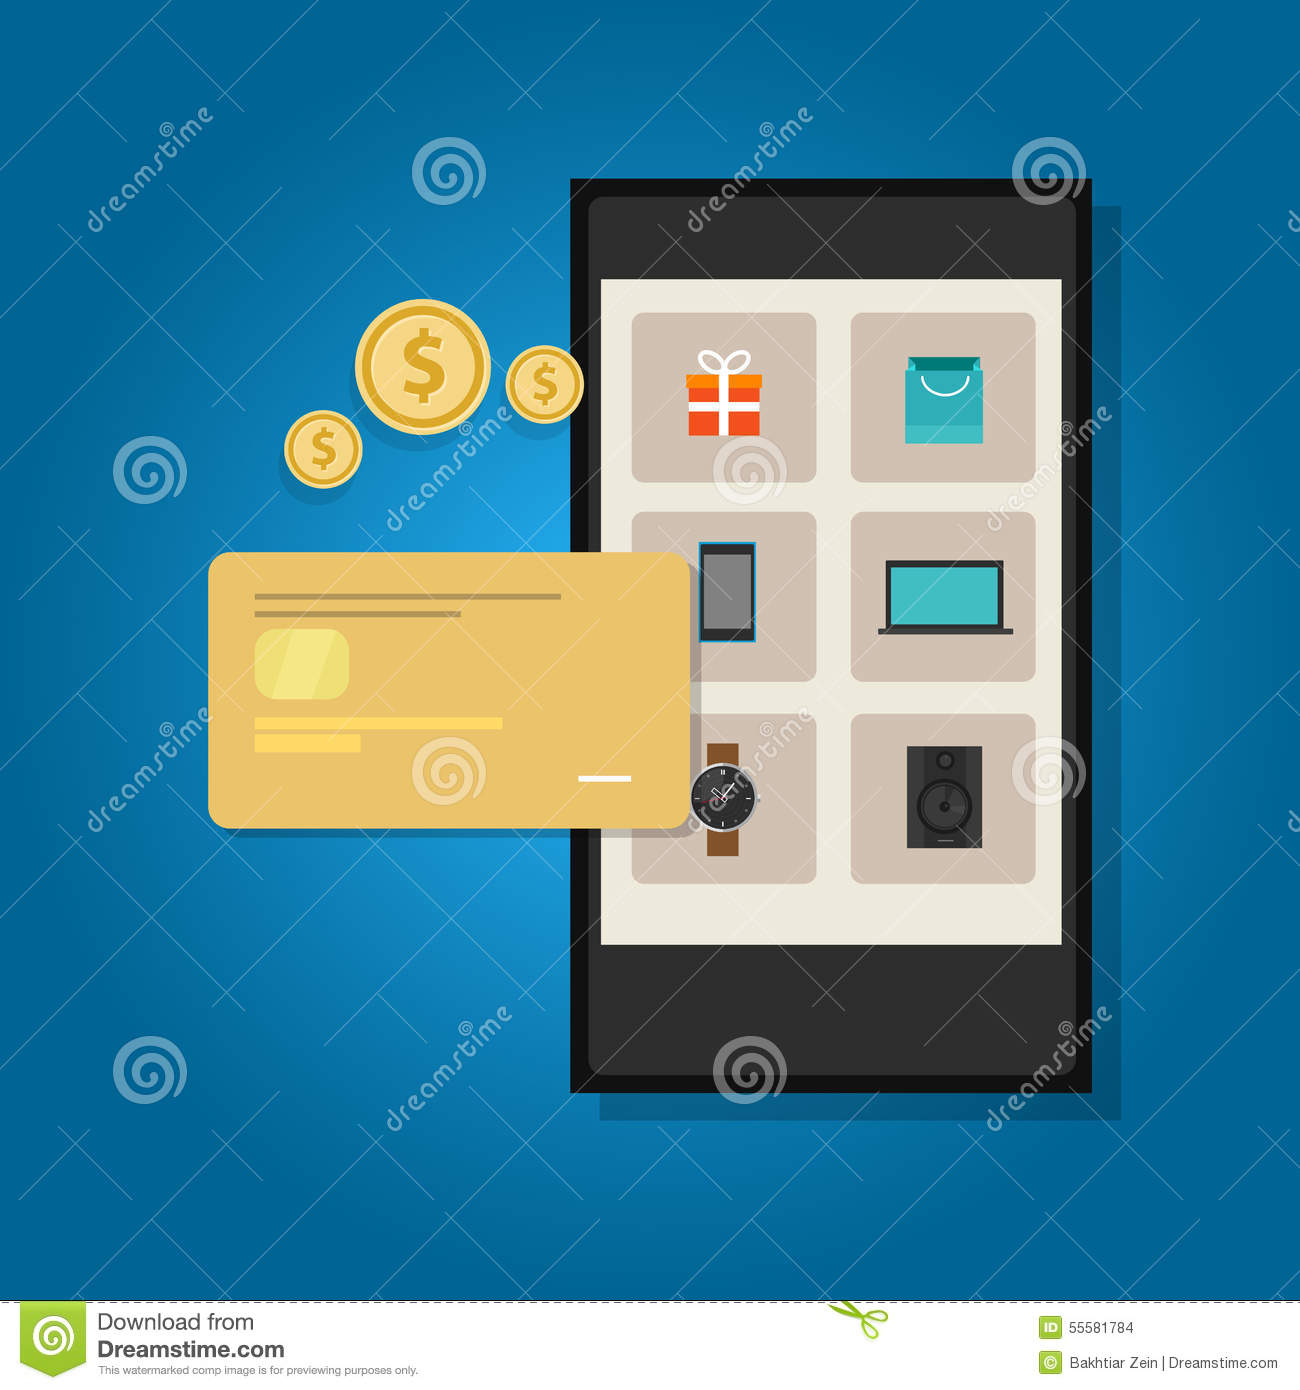 how to buy phone credit online